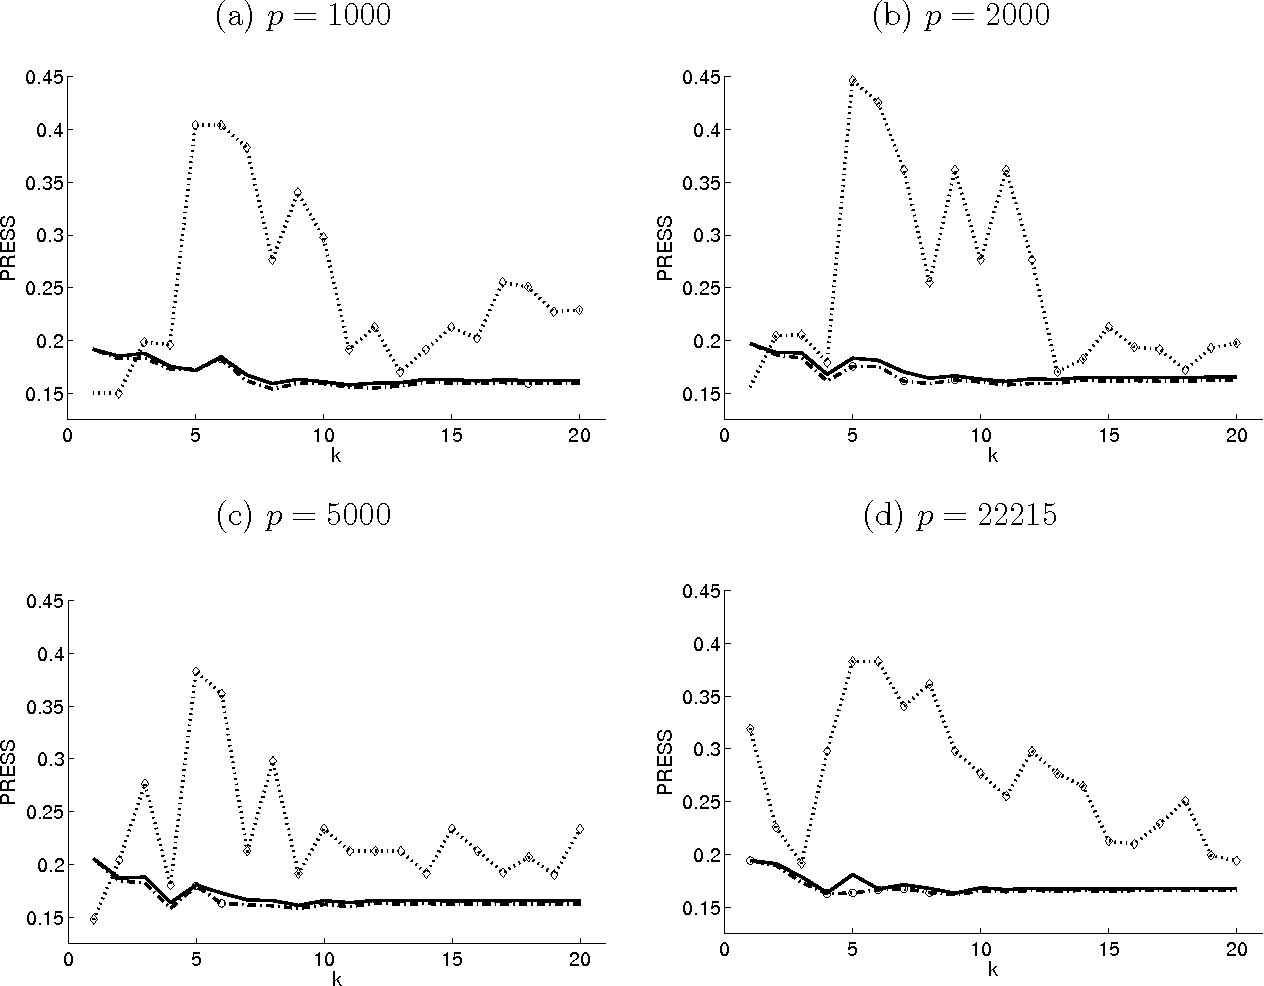 Figure 2: Sum of Squares of the Prediction Residuals (PRESS) in Analyzing the Lung Cancer Data. The results were obtained using IRPLS-M (dotted lines), IRPLS-DG (dashed dotted lines), GOCRE0 (dashed lines), and GOCRE (solid lines) respectively. Non-converged methods were marked by diamonds for IRPLS-M, and circles for IRPLS-DG.